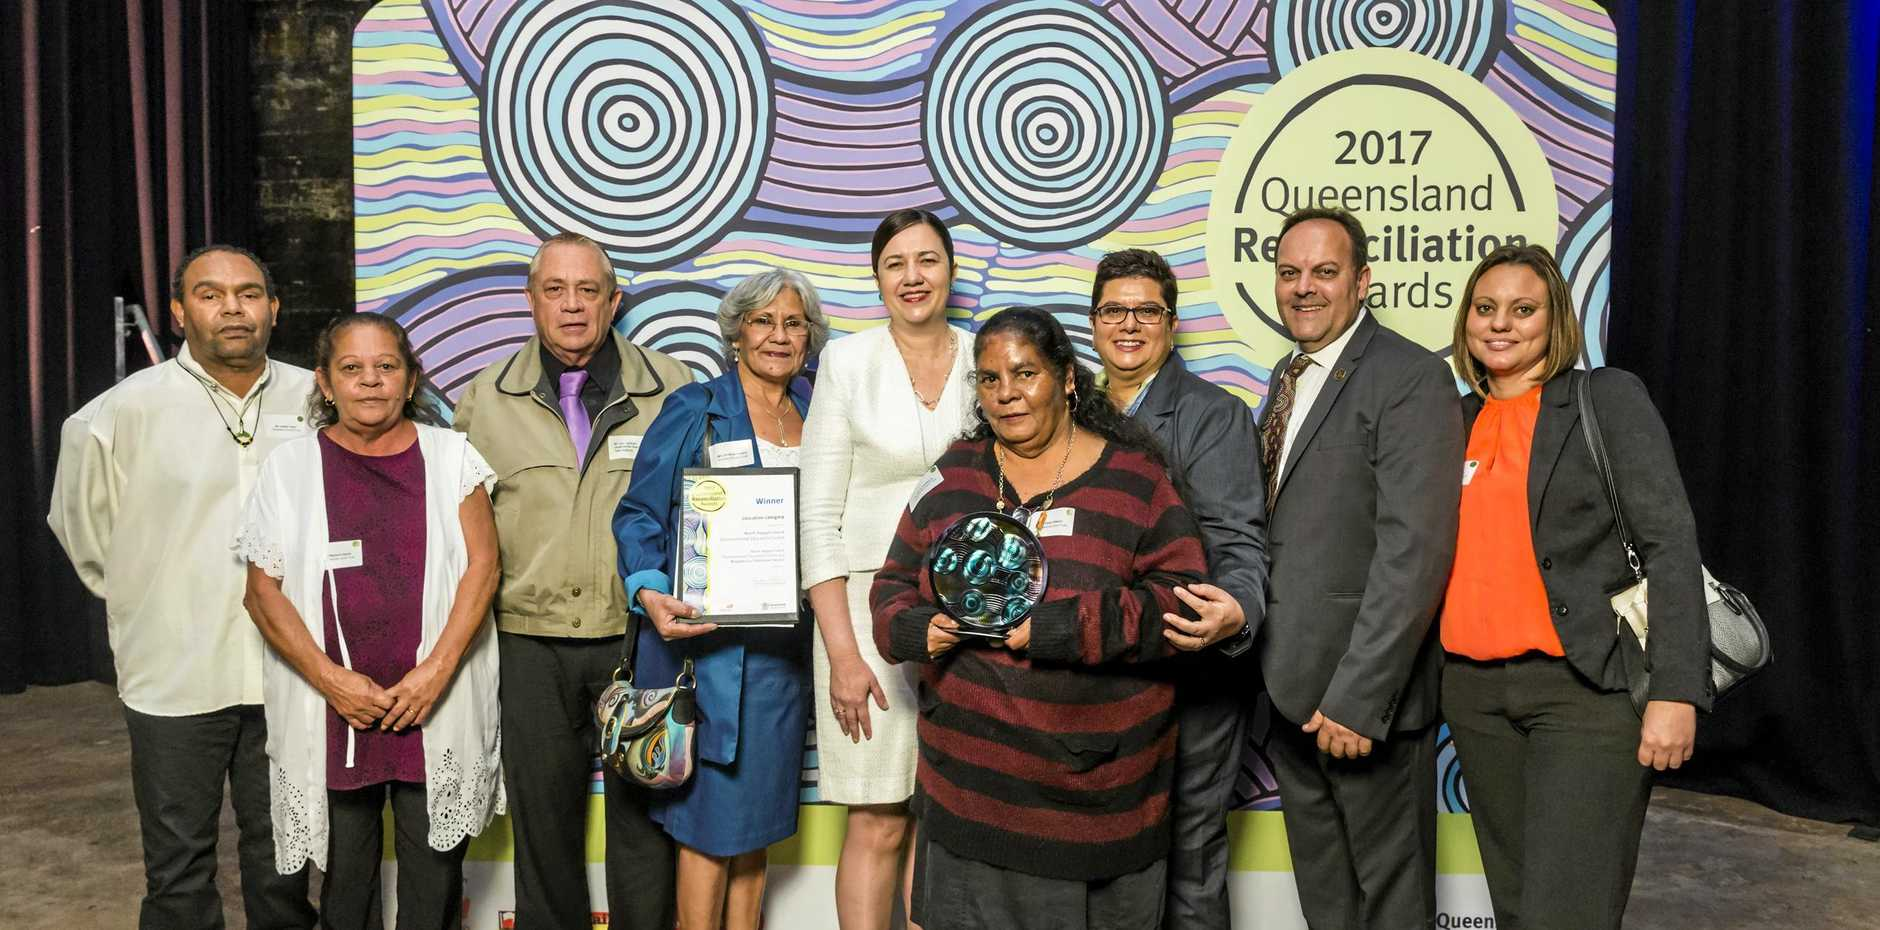 North Keppel Island Environmental Education Centre with Premier Annastacia Palaszczuk at the 2017 QLD Reconciliation Awards Ceremony, Tanks Arts Centre, Cairns.